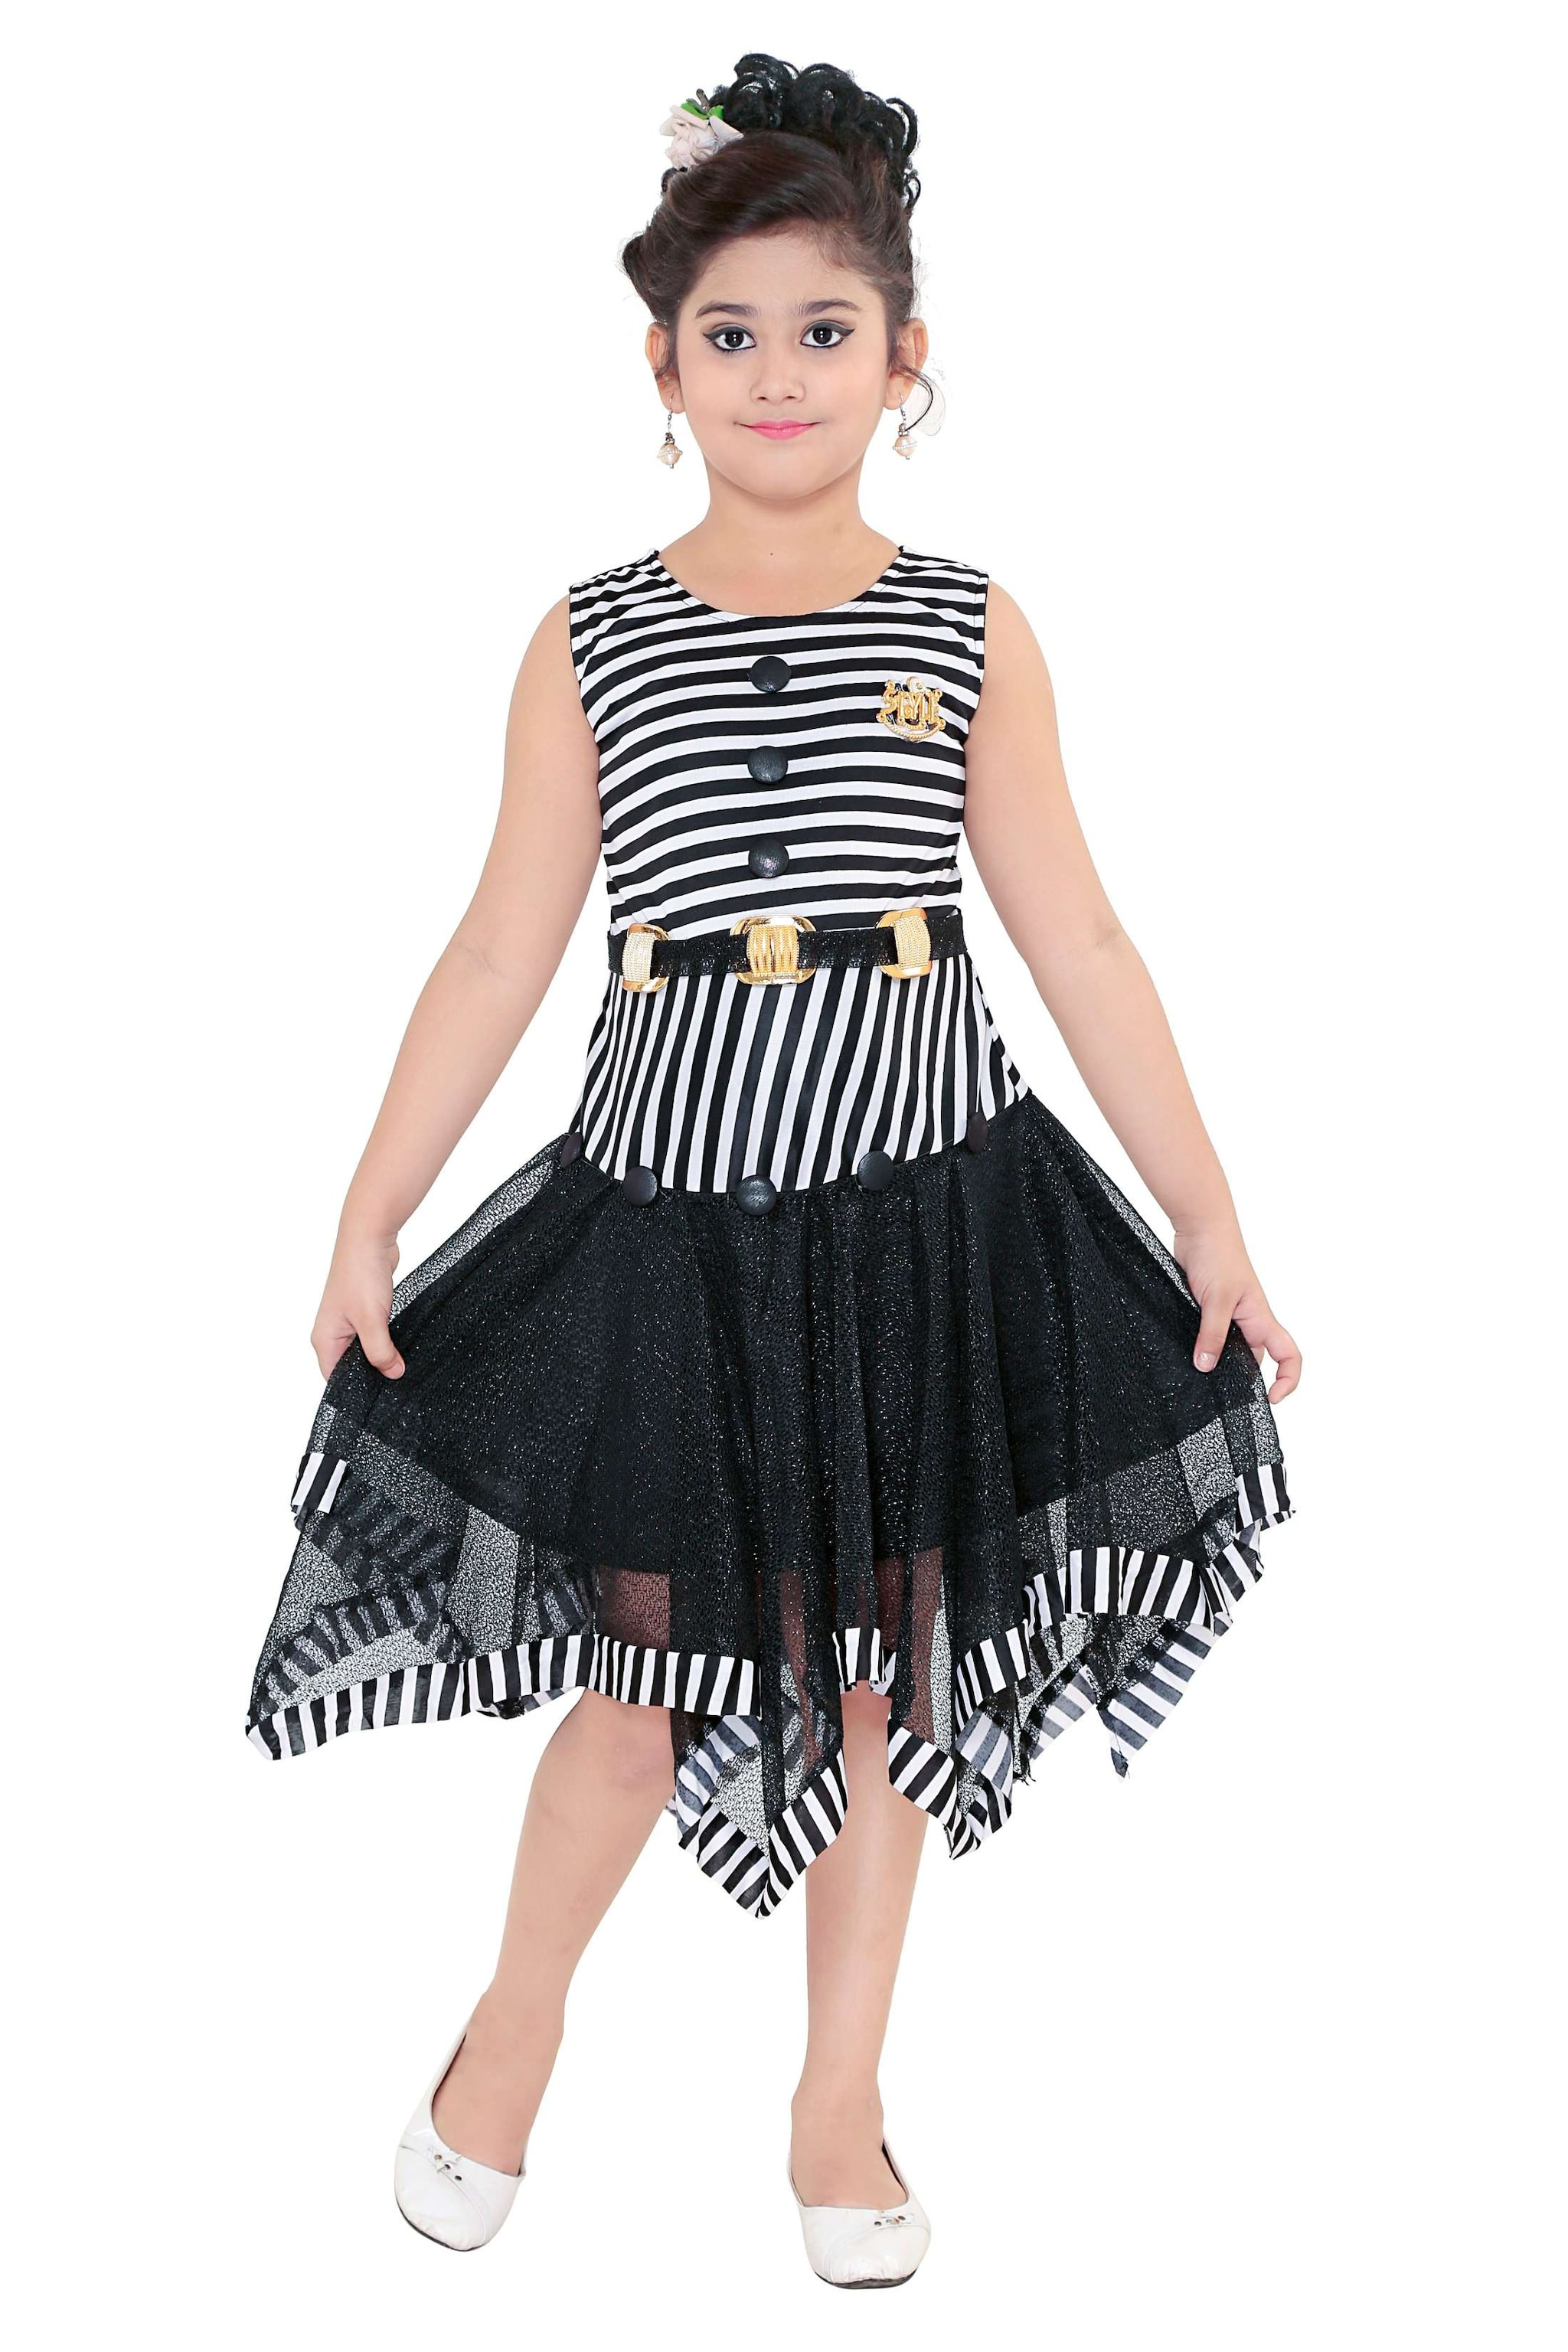 Girls Dresses - Buy Girls Party Wear Frocks b3aaff495